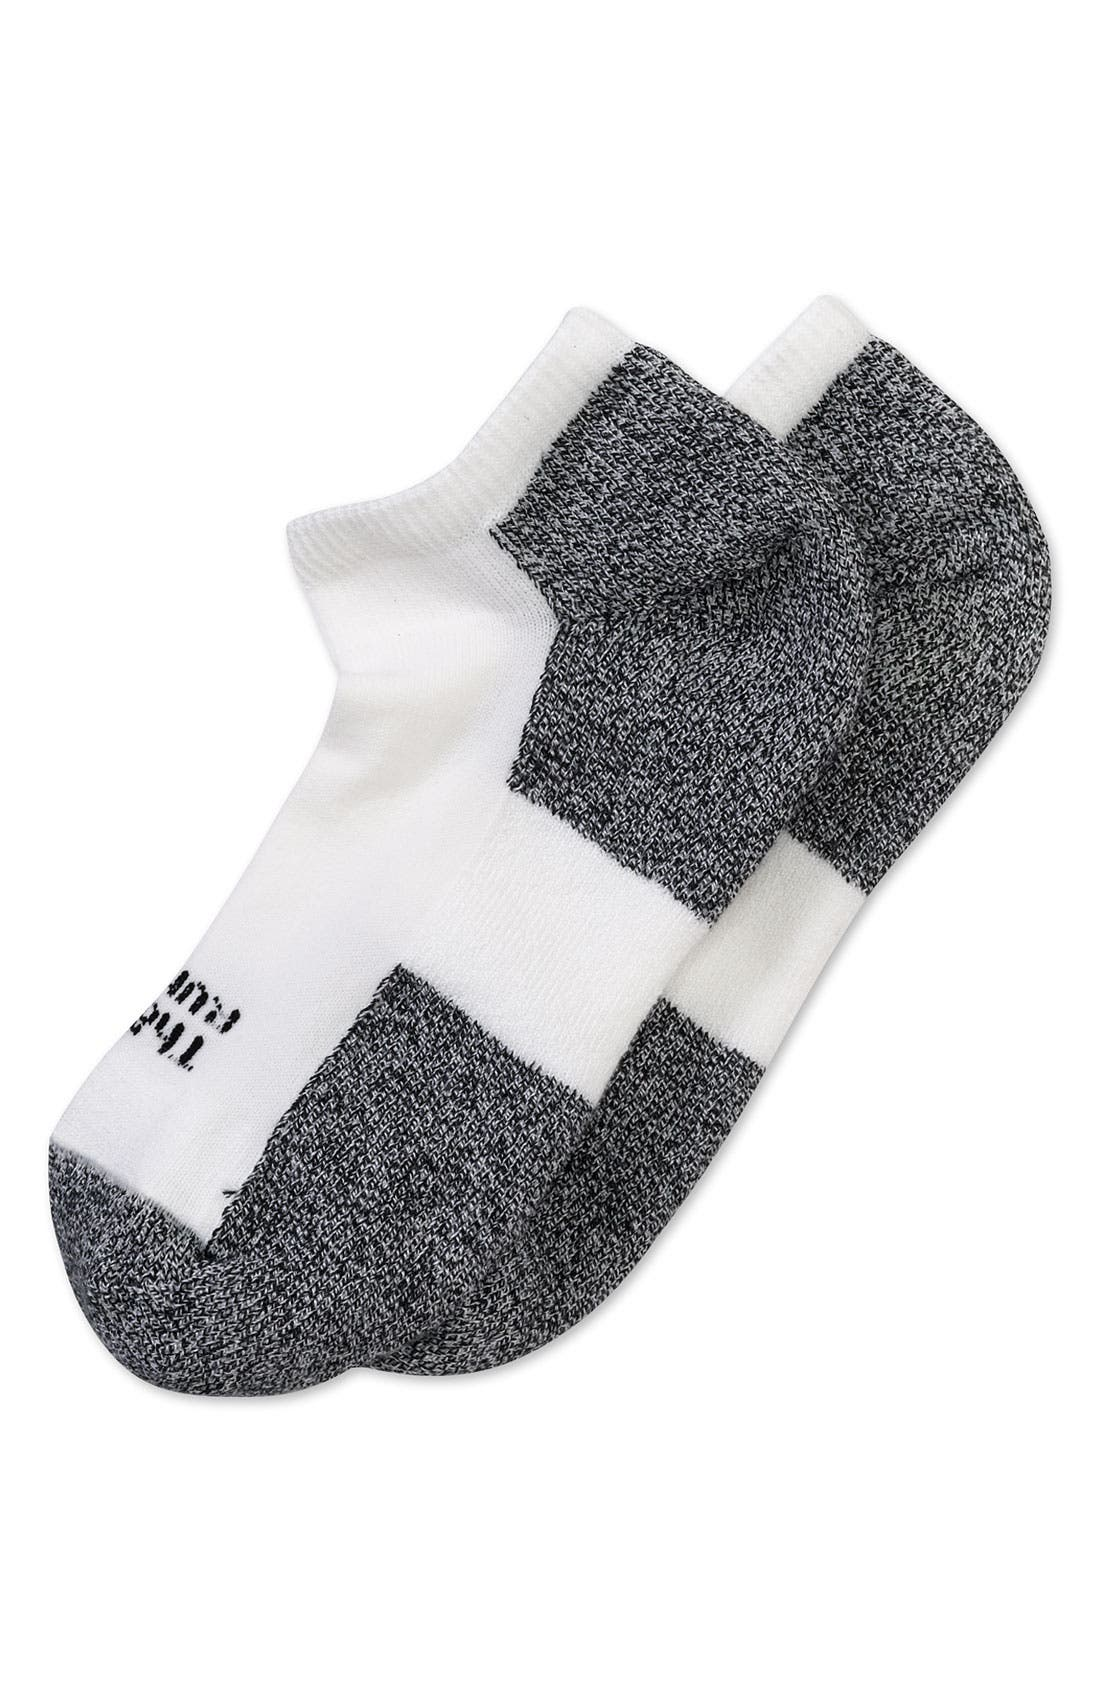 Main Image - Thorlo Low Cut Running Socks